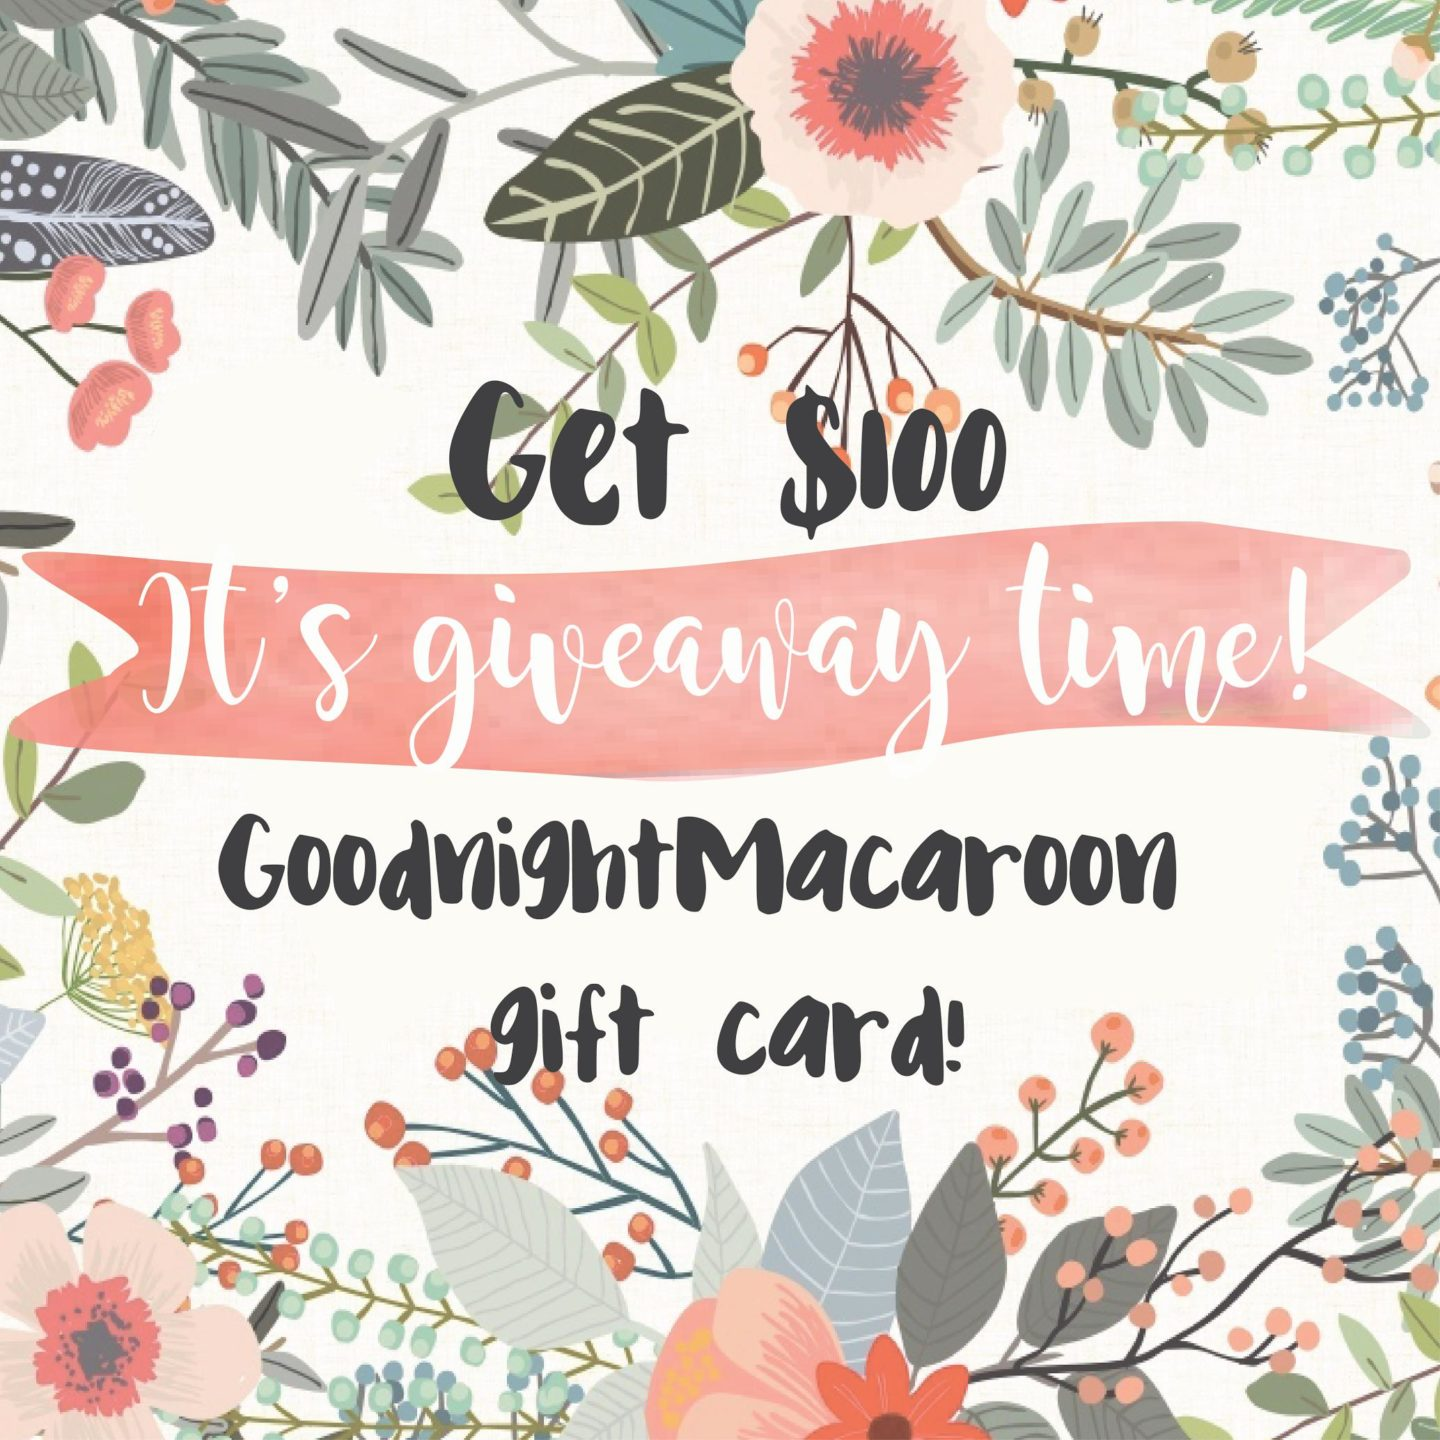 Goodnight Macaroon Giveaway